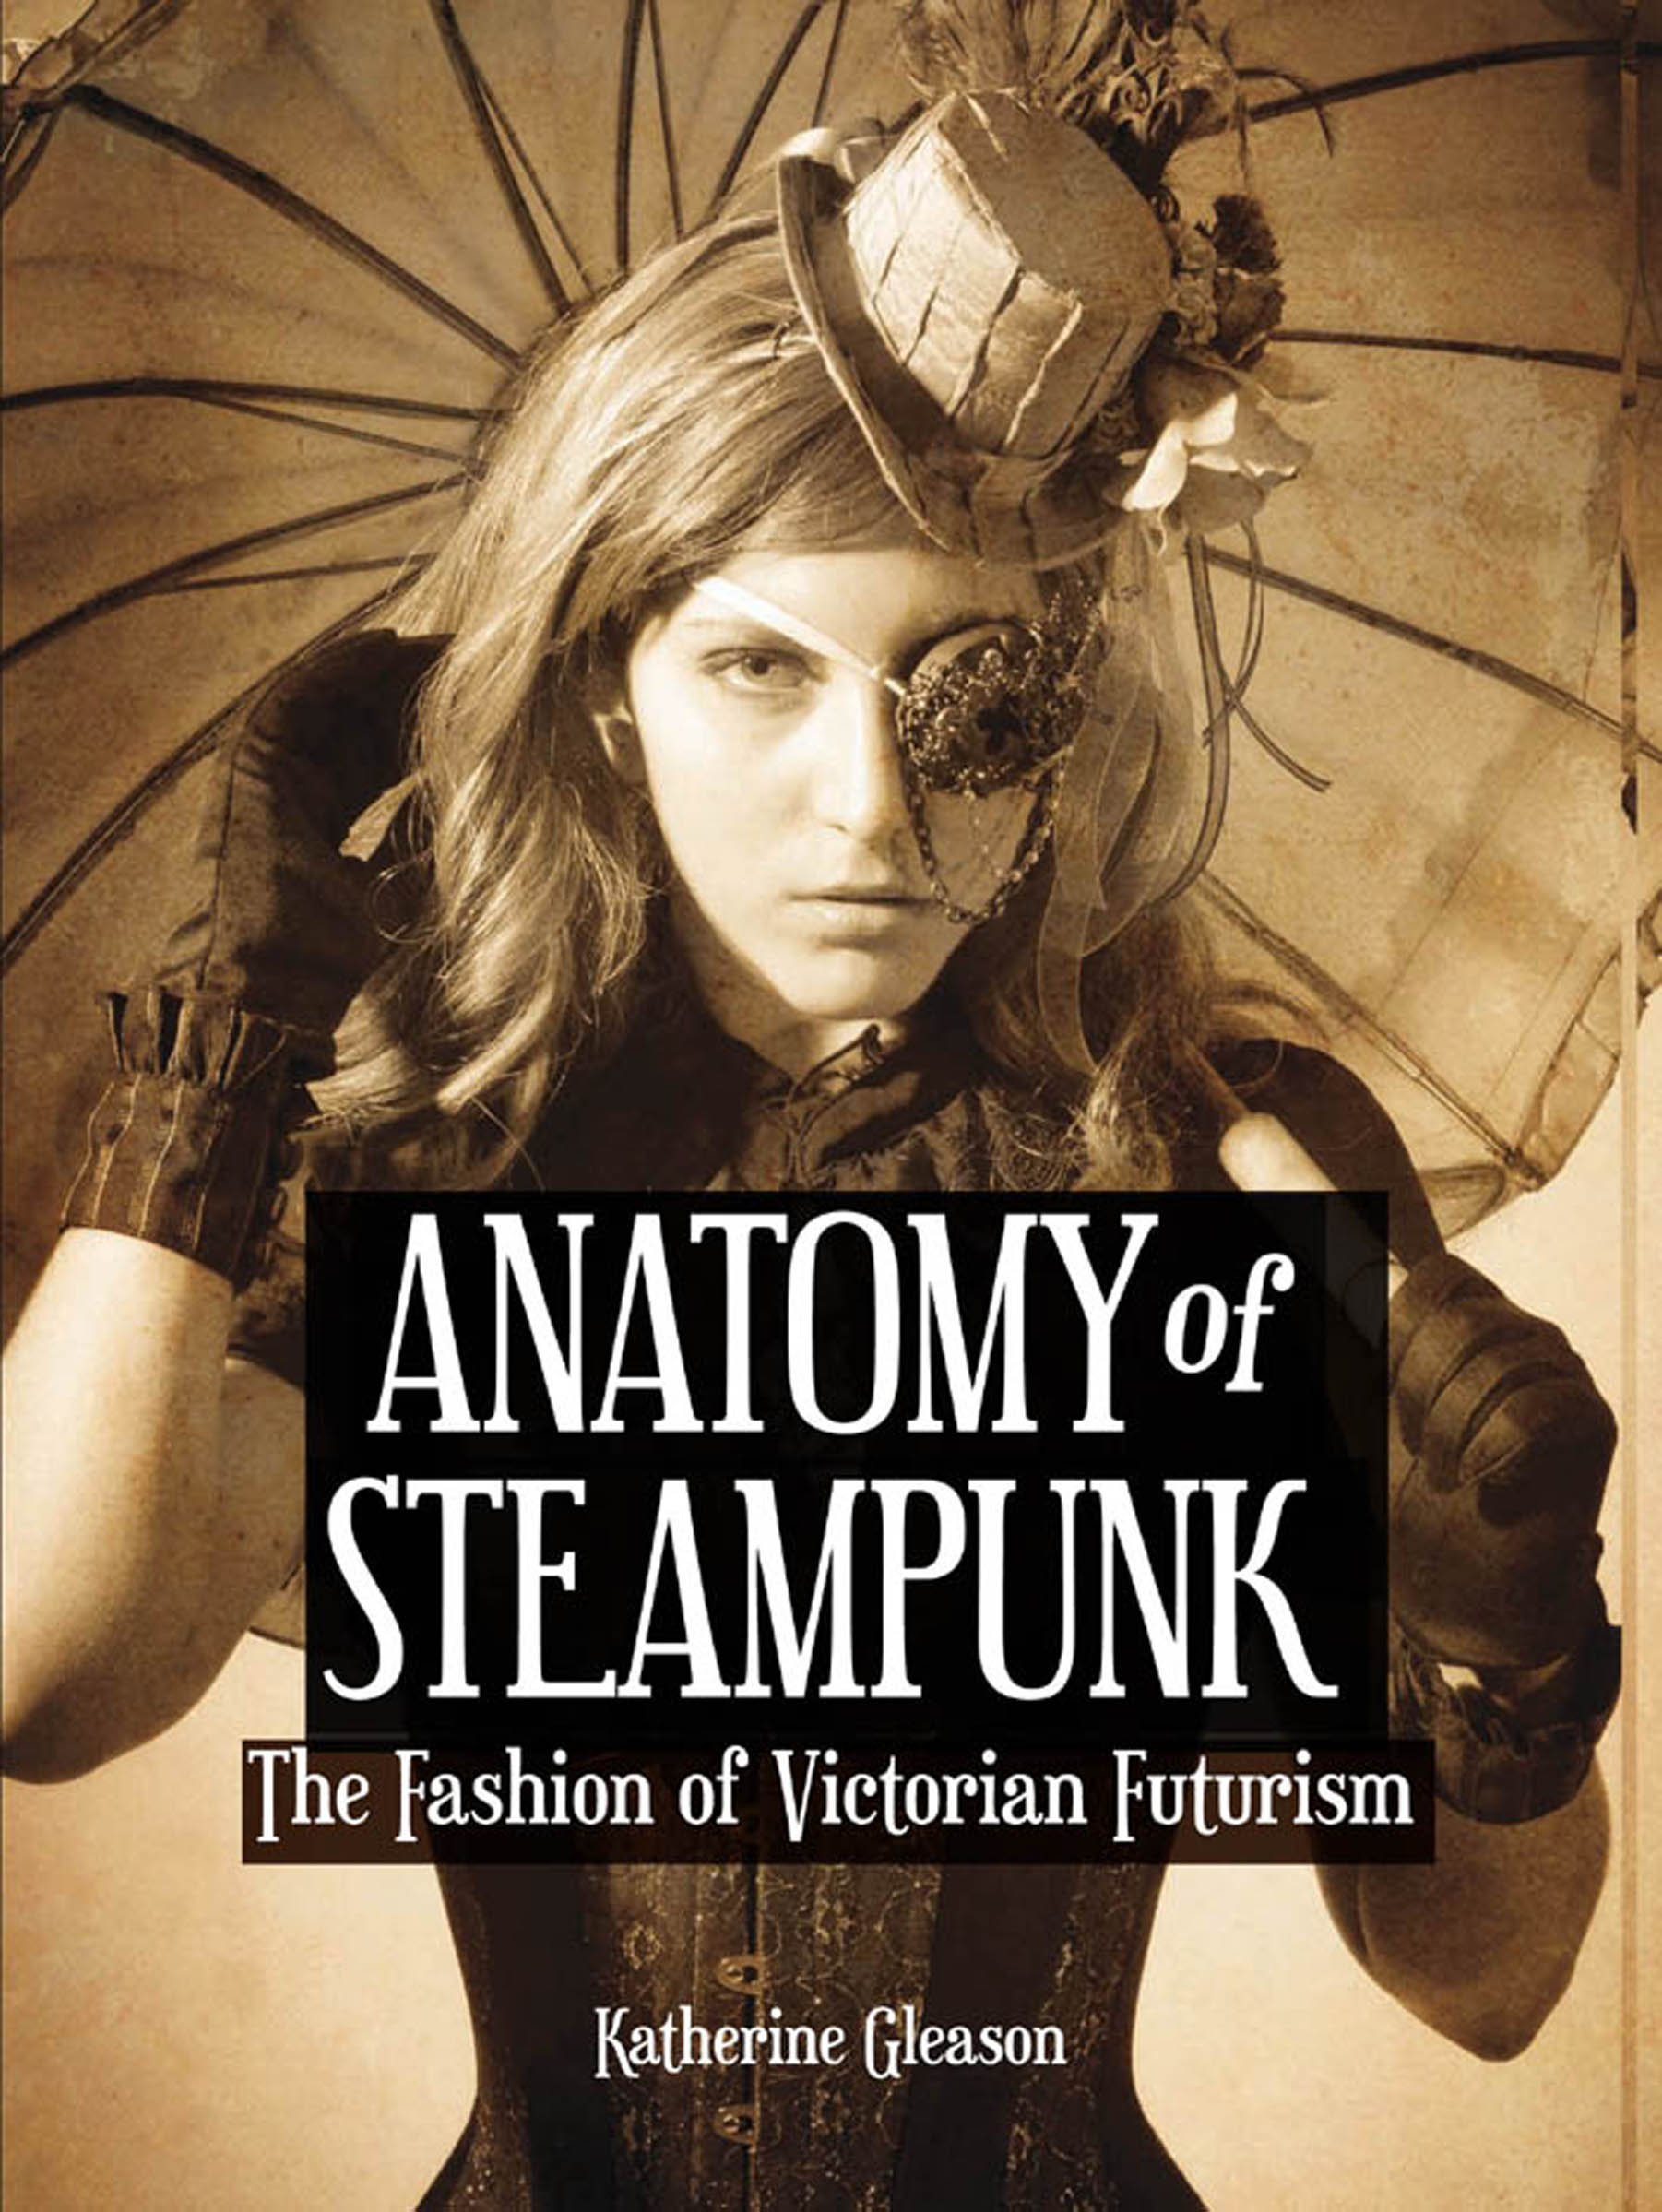 Dissecting Anatomy of Steampunk